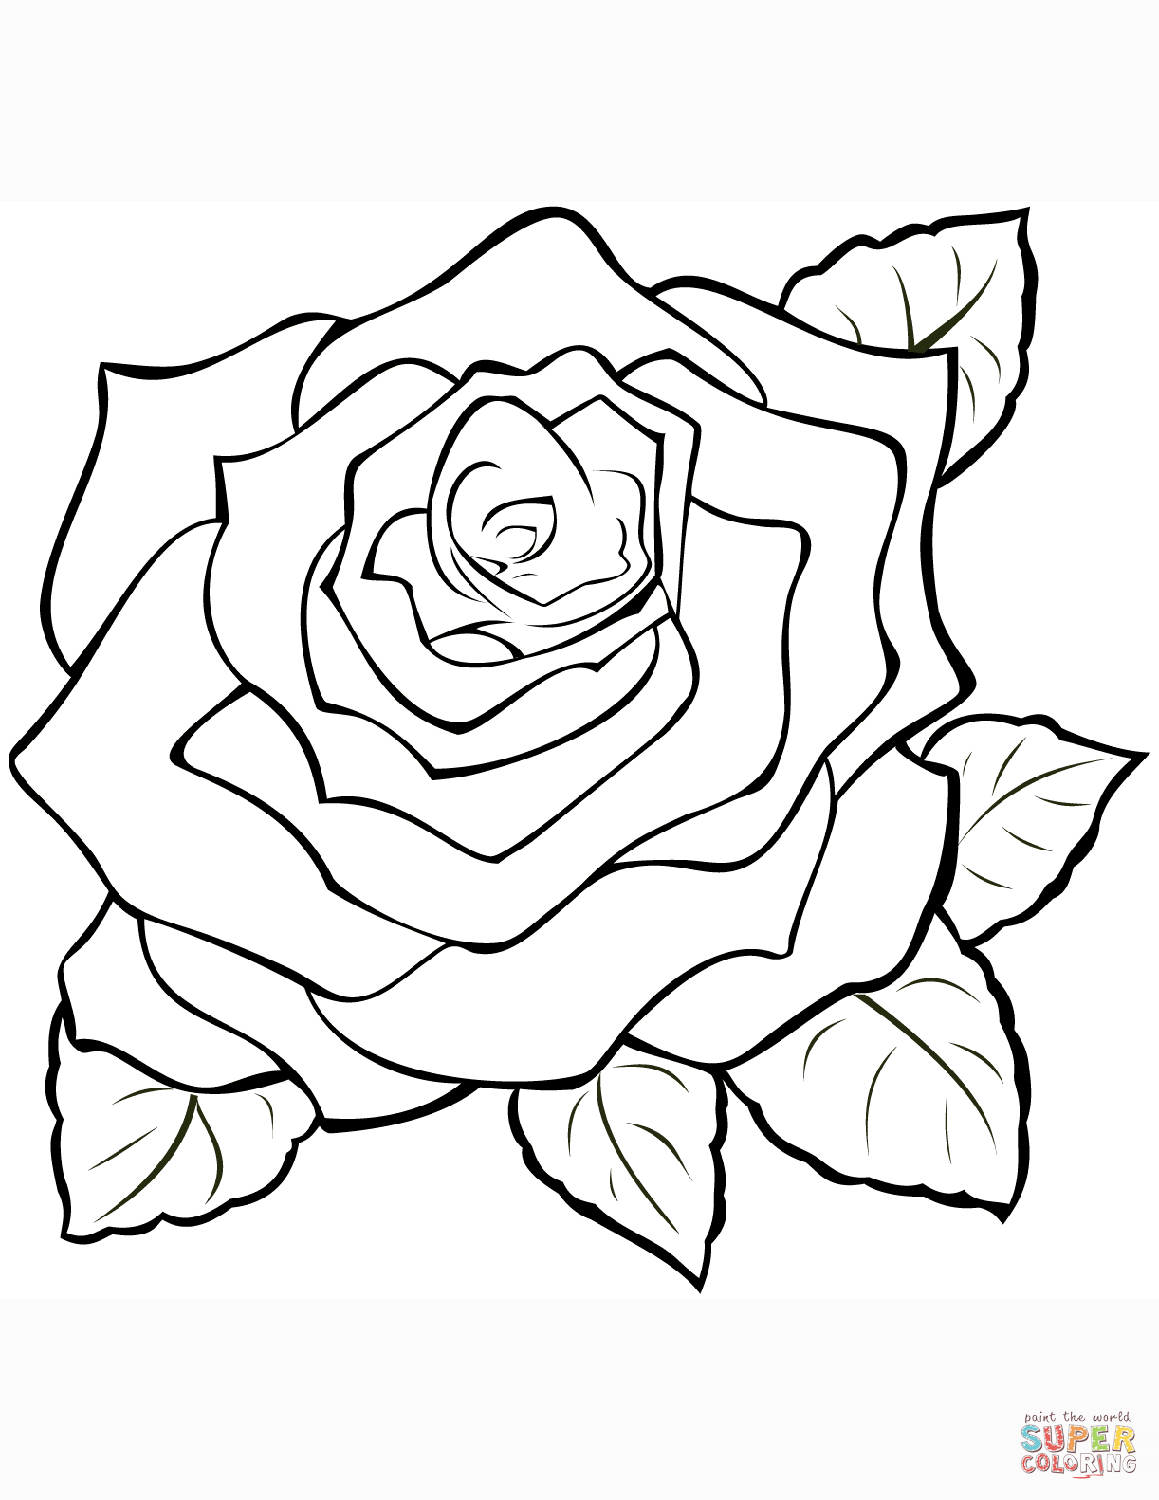 free printable rose coloring pages free printable roses coloring pages for kids free printable pages coloring rose